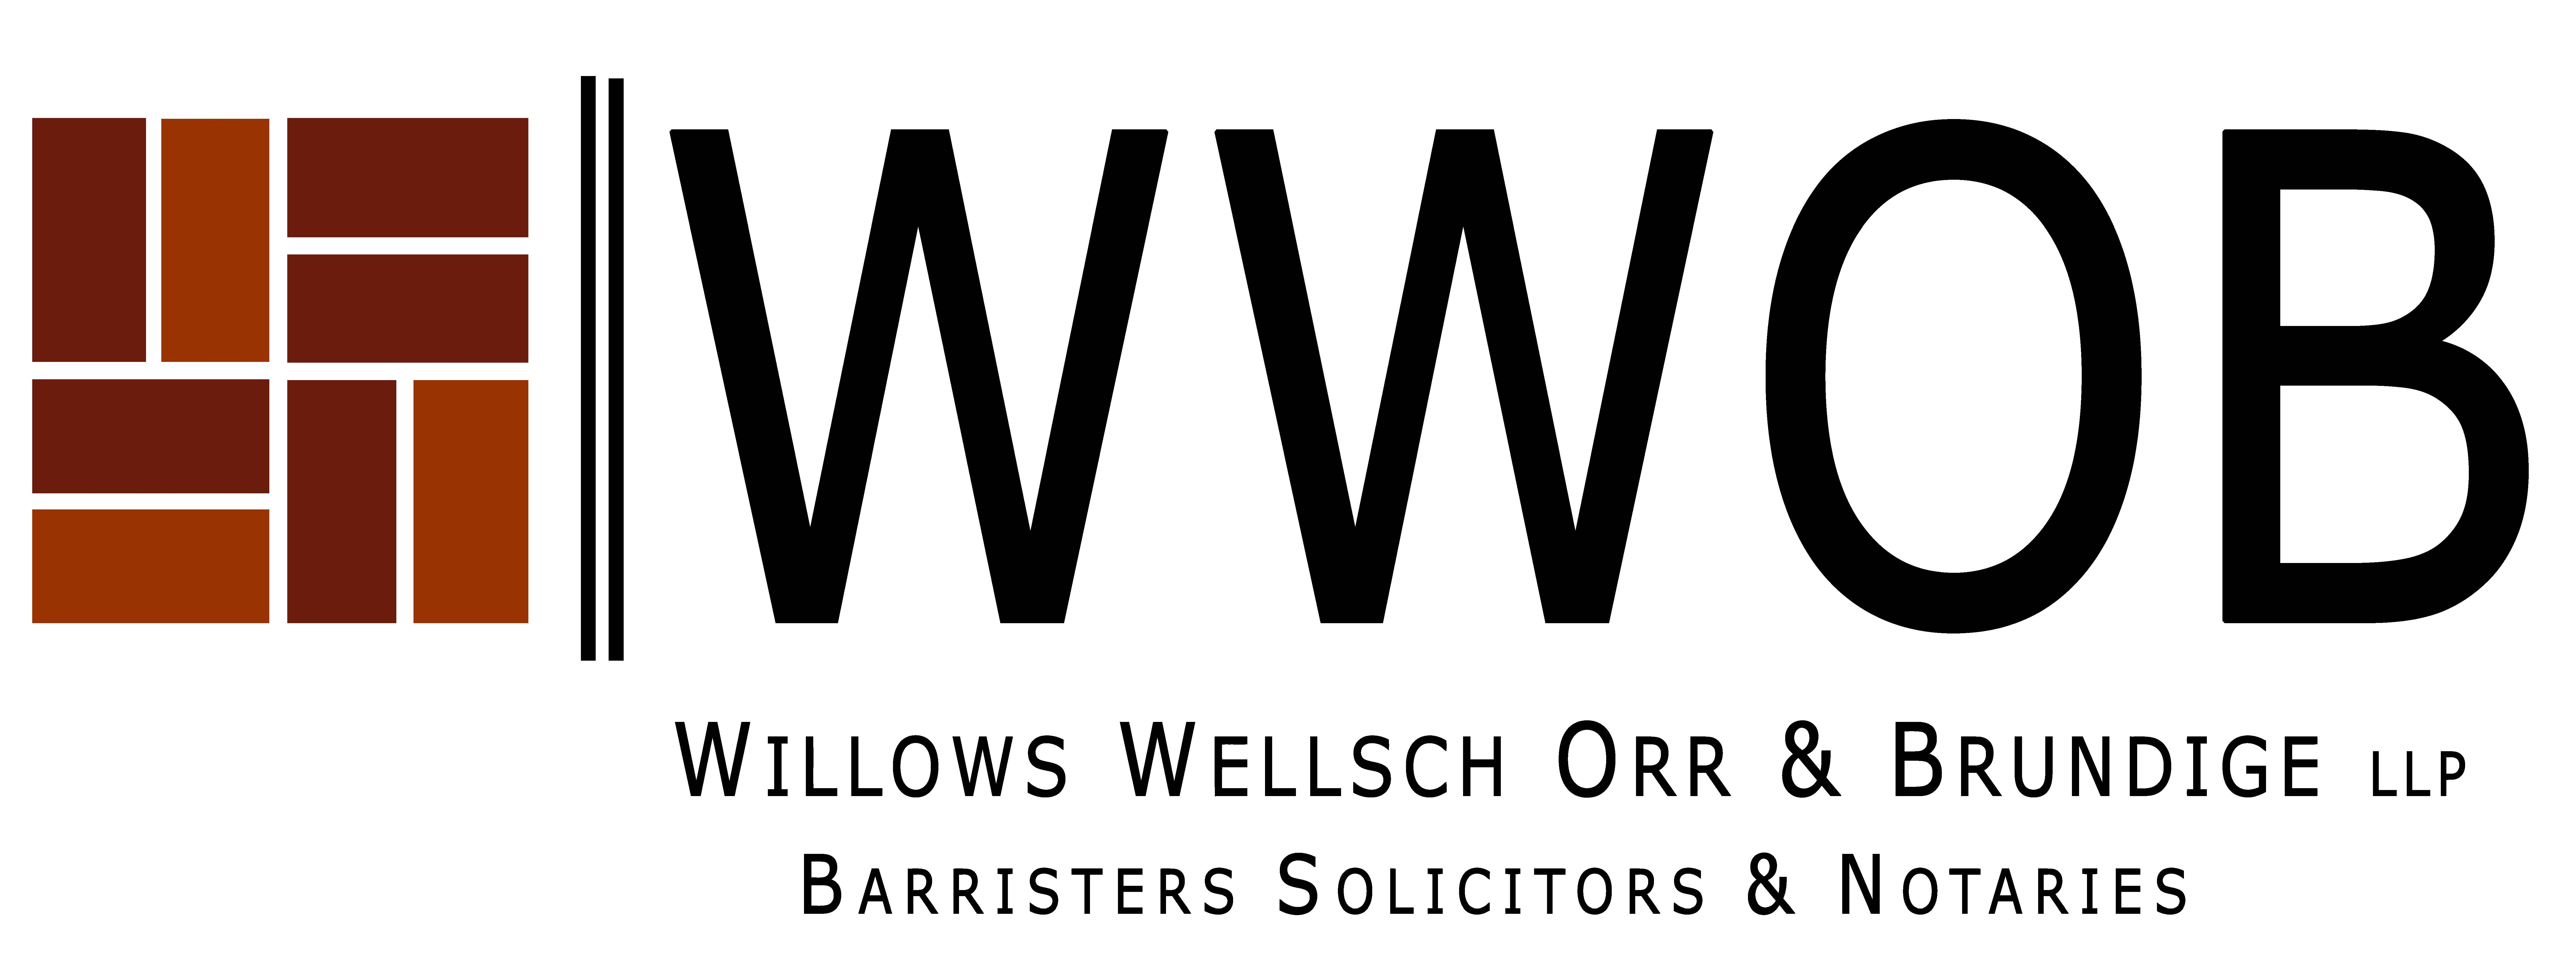 Willows Wellsch Orr & Brundige LLP